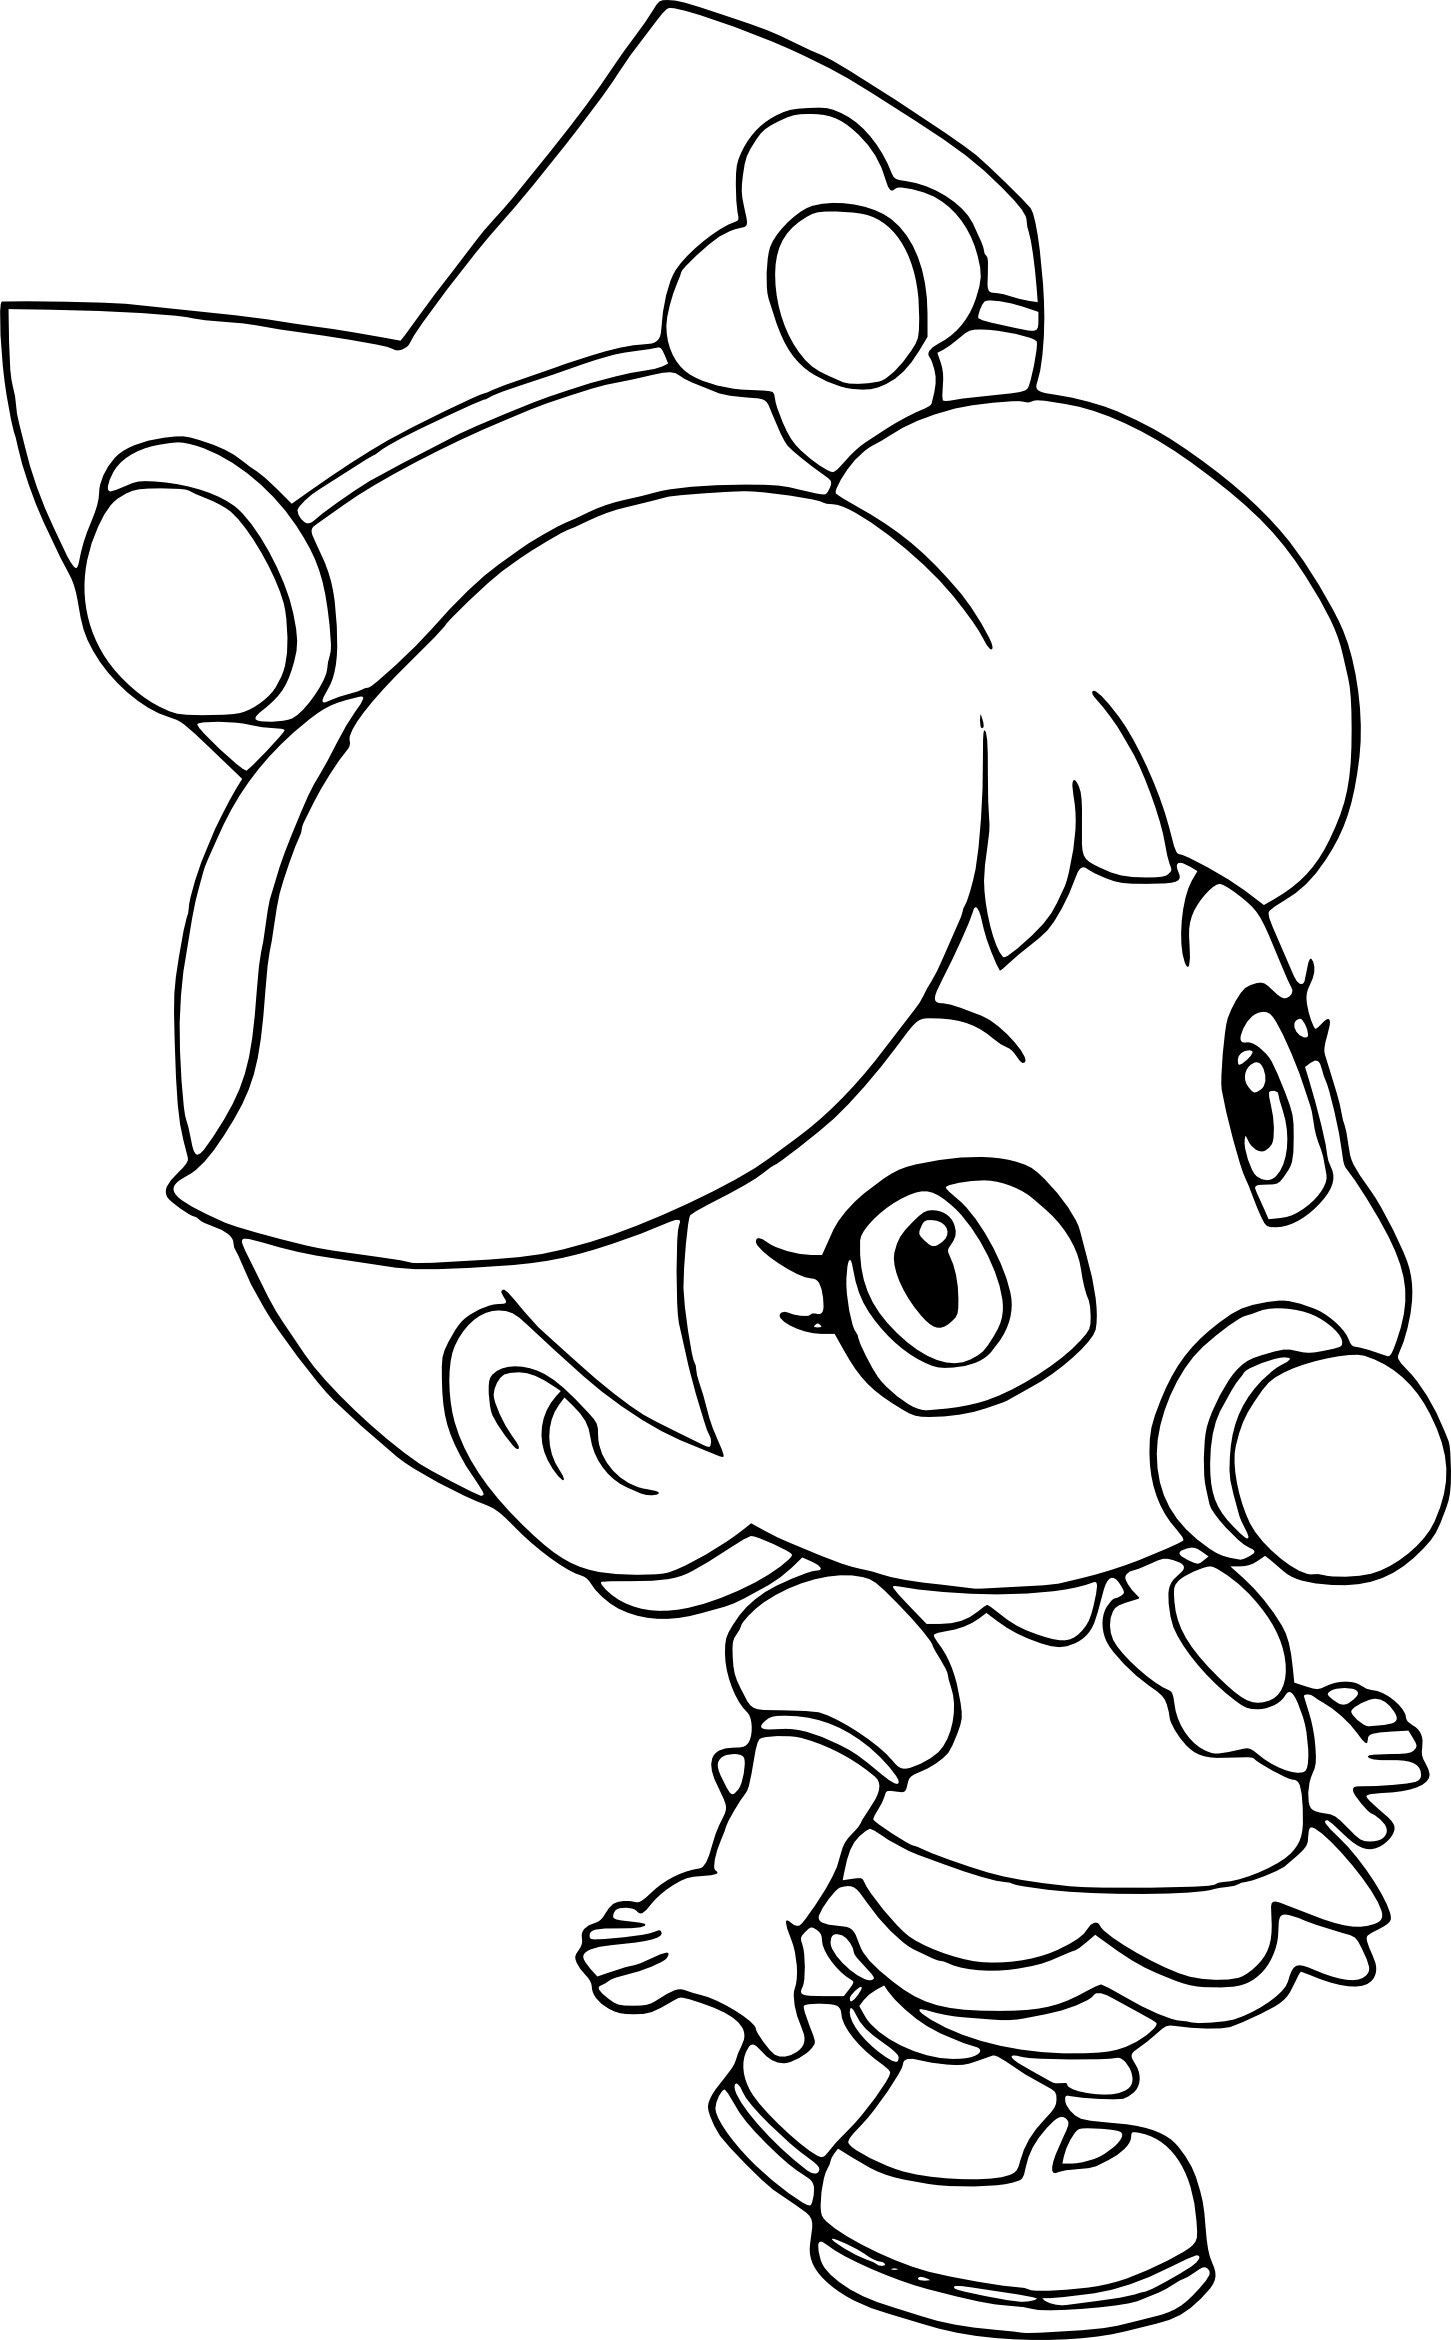 Peach From Mario Coloring Pages Mario Brothers Princess Peach Coloring Pages Inspirational Coloring